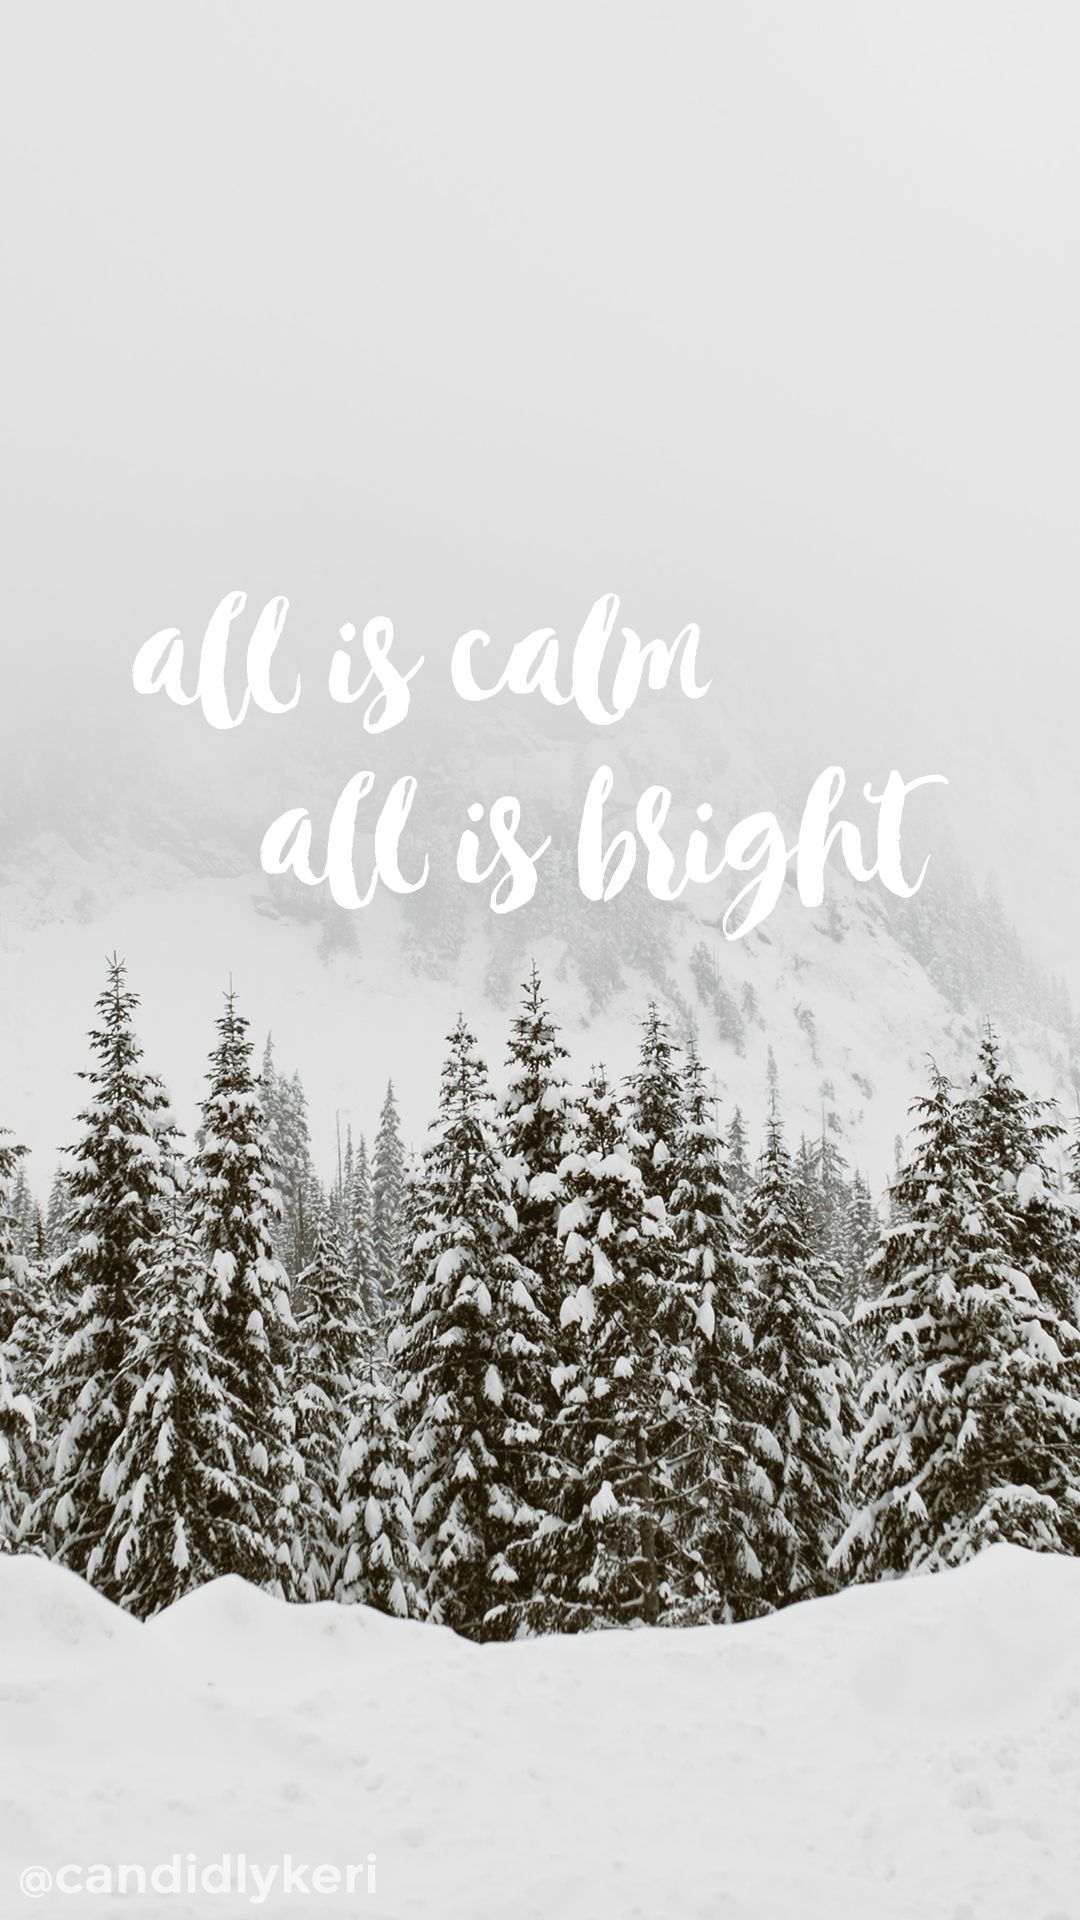 All Is Calm All Is Bright Background Wallpaper You Can Download For Free On The Blog For Any Device Holiday Wallpaper December Wallpaper Christmas Wallpaper